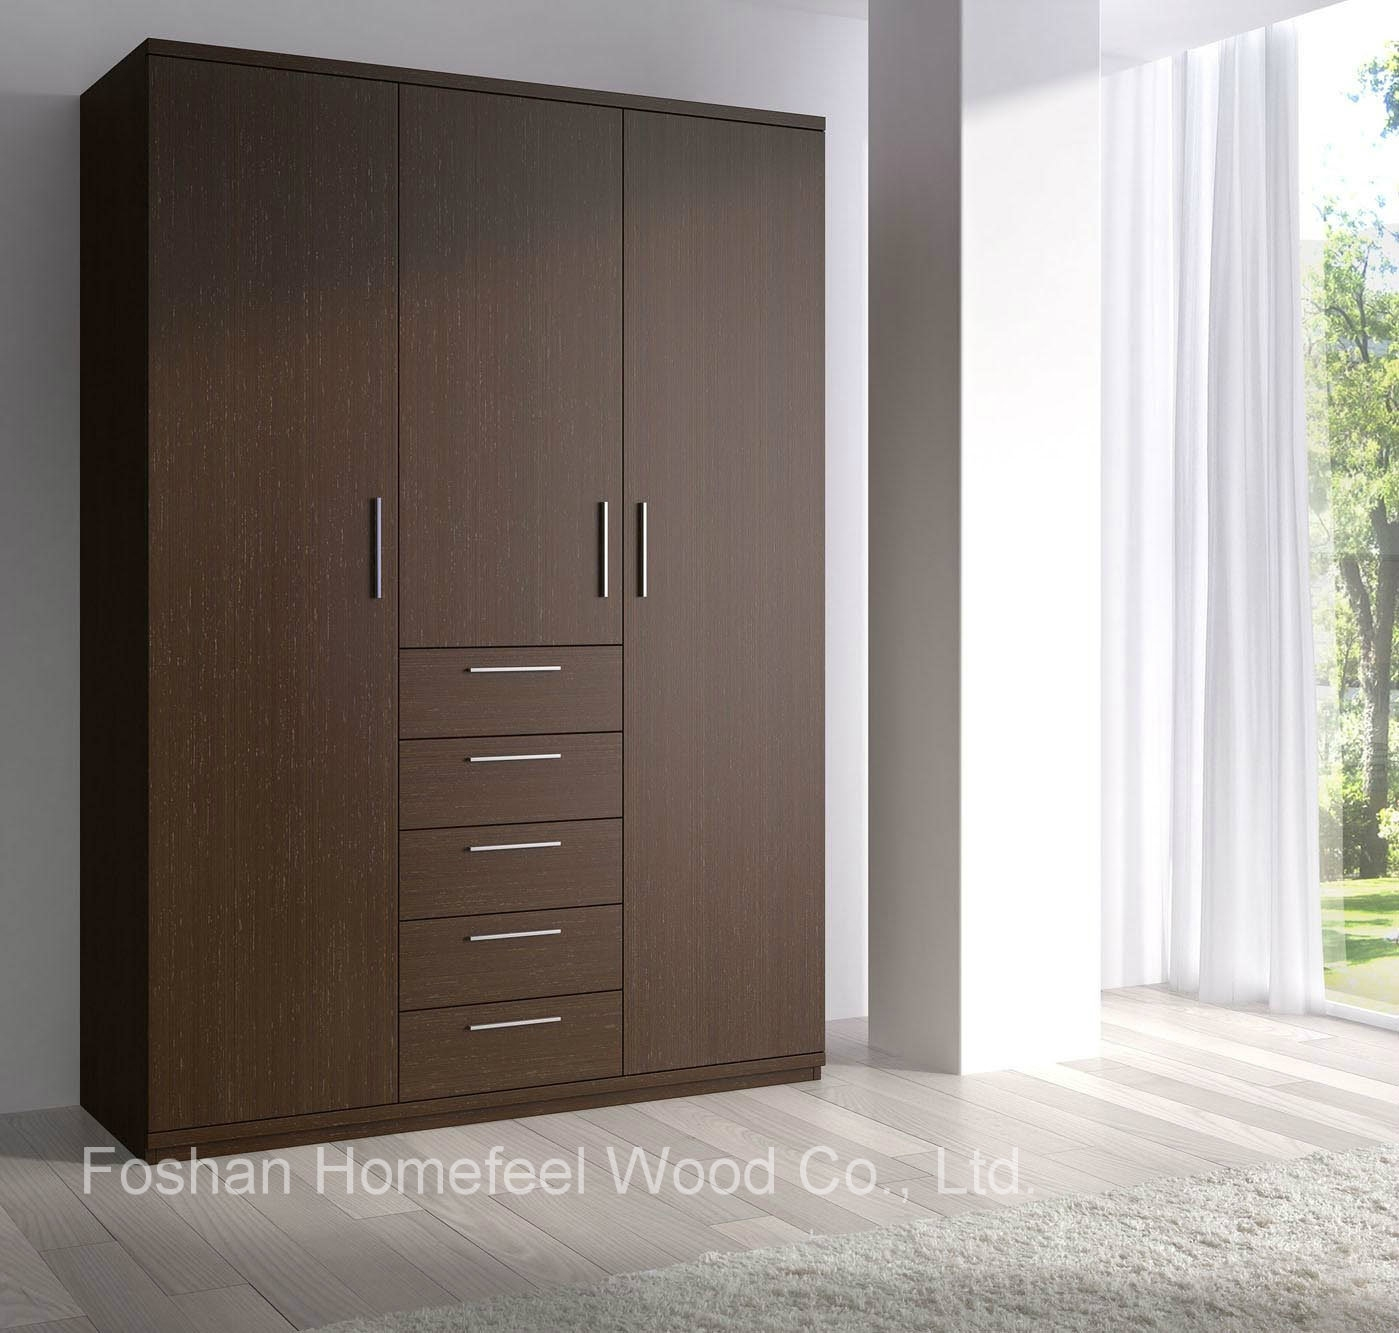 China Dark Brown Wooden Wardrobe With 3 Door Modern Furniture Hf With Regard To Dark Wood Wardrobes (Image 4 of 15)